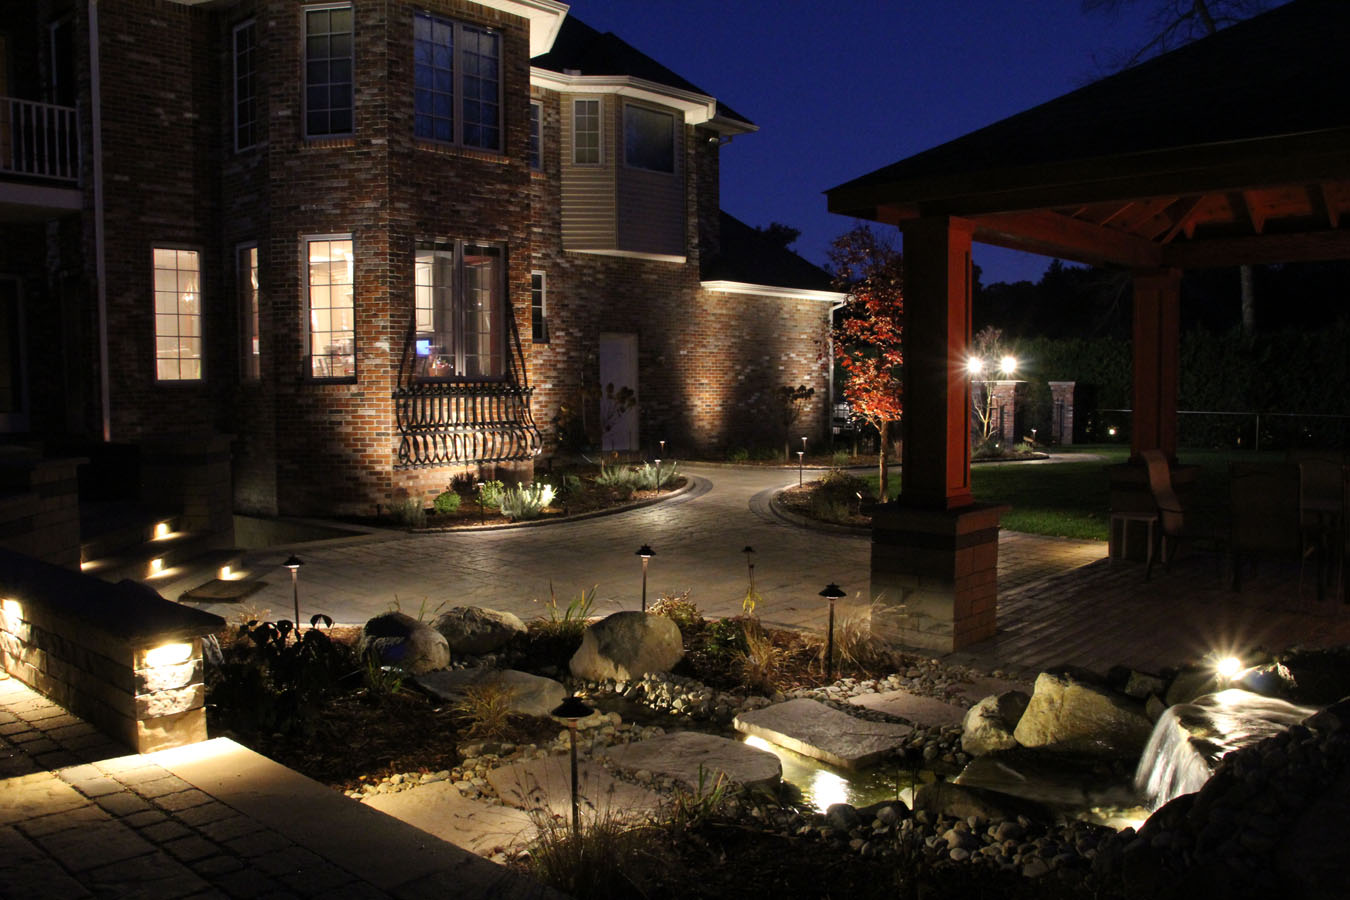 Outdoor lighting water projects by area contractors new england of the great outdoor lighting and water feature projects completed with our materials click on any image to enlarge and browse through the photos aloadofball Images